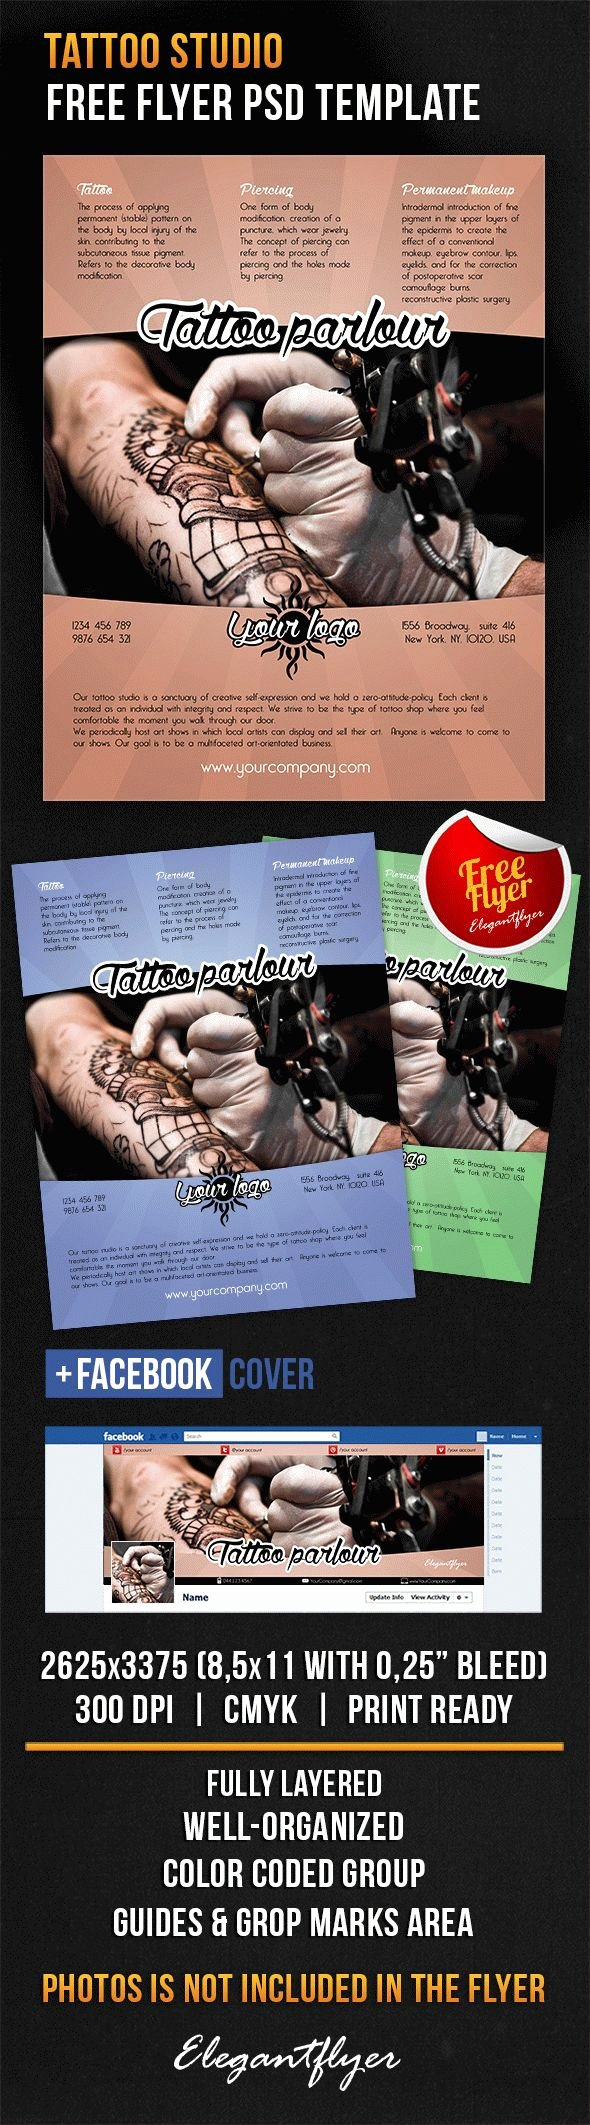 Tattoo Gift Certificate Template Free New Tattoo Studio – Free Flyer Psd Template – by Elegantflyer